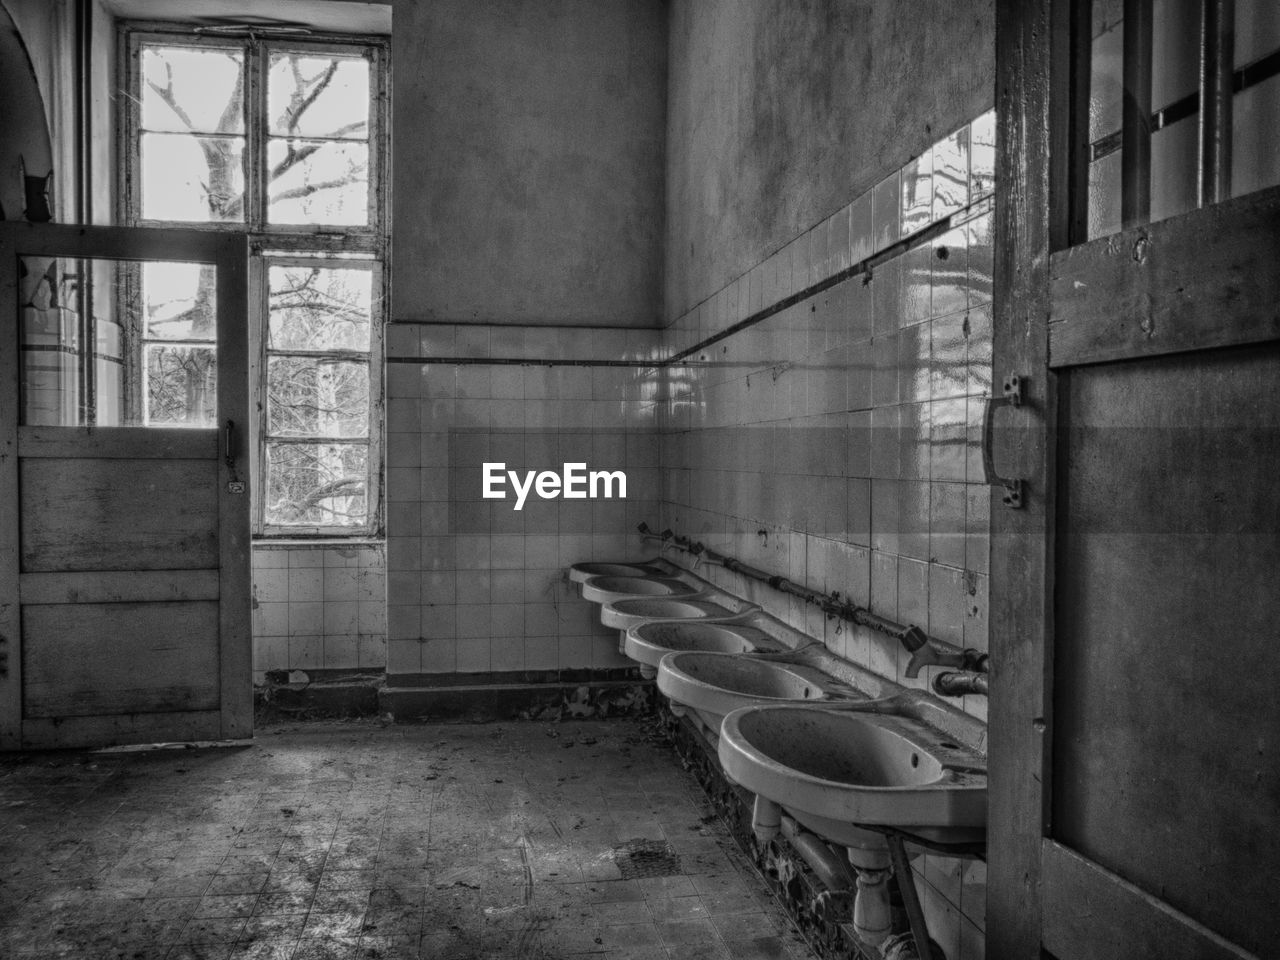 abandoned, indoors, damaged, messy, absence, dirty, empty, architecture, no people, window, day, bathroom, domestic room, destruction, built structure, toilet bowl